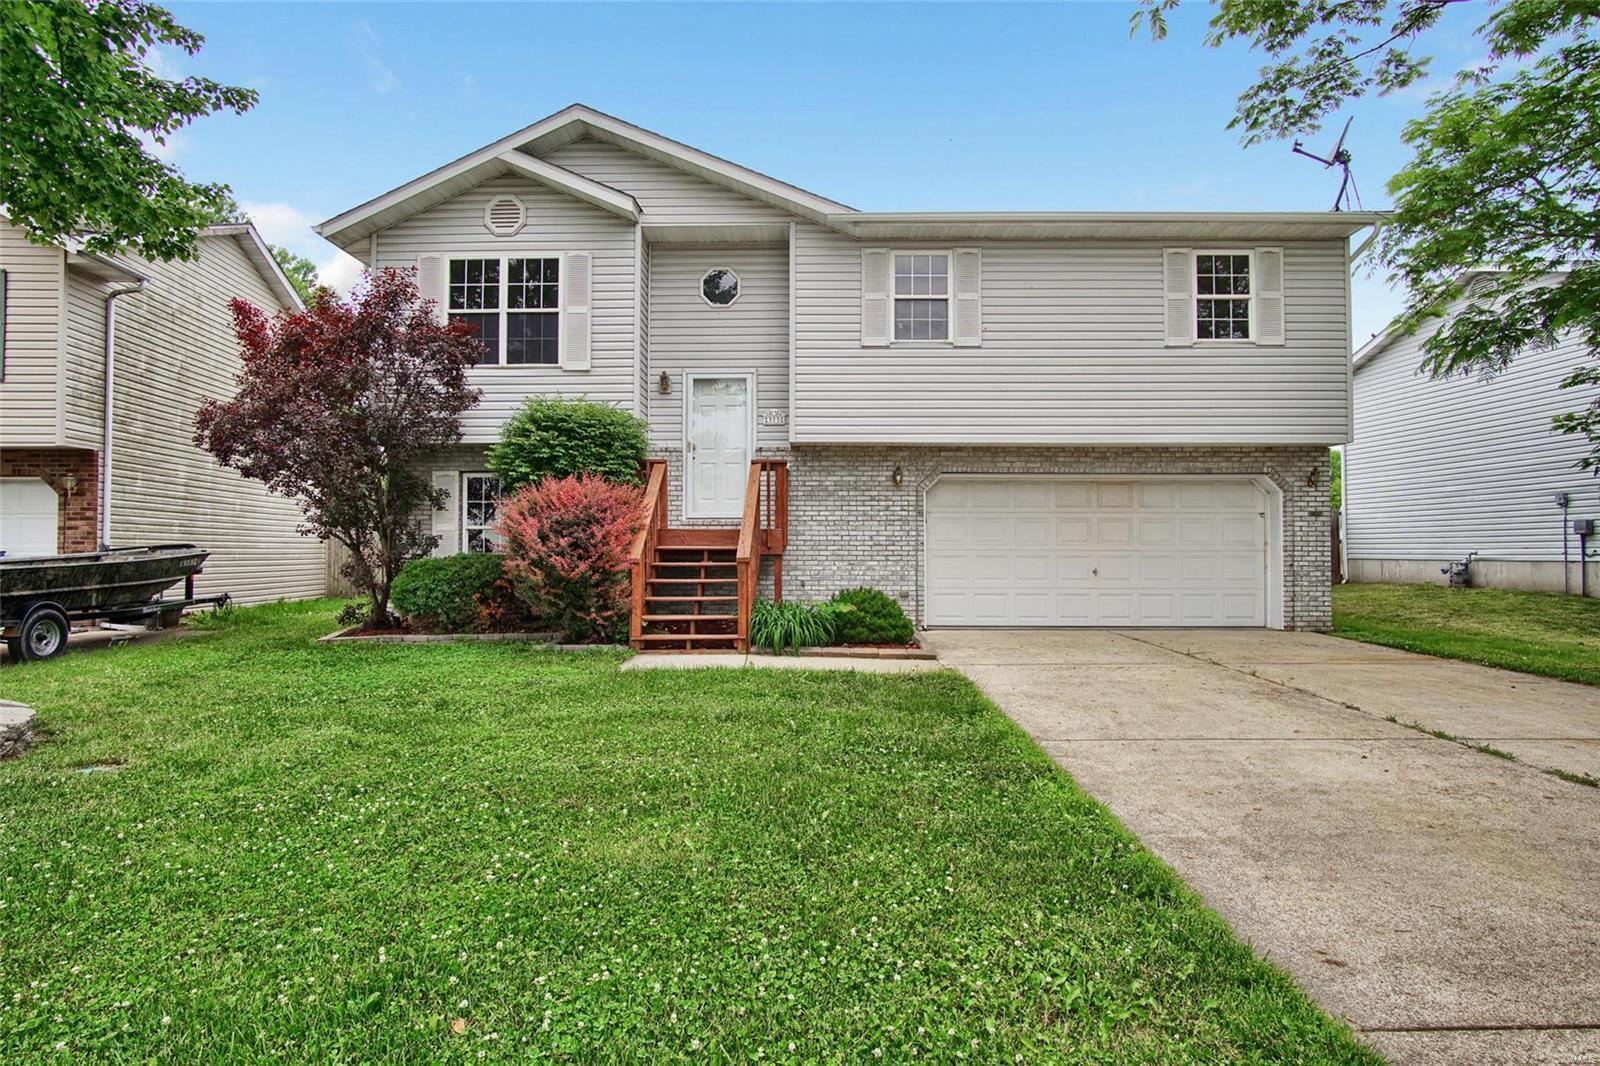 373 Orchard Court, Troy, IL | MLS# 18042784 | Andy Robinson | 618